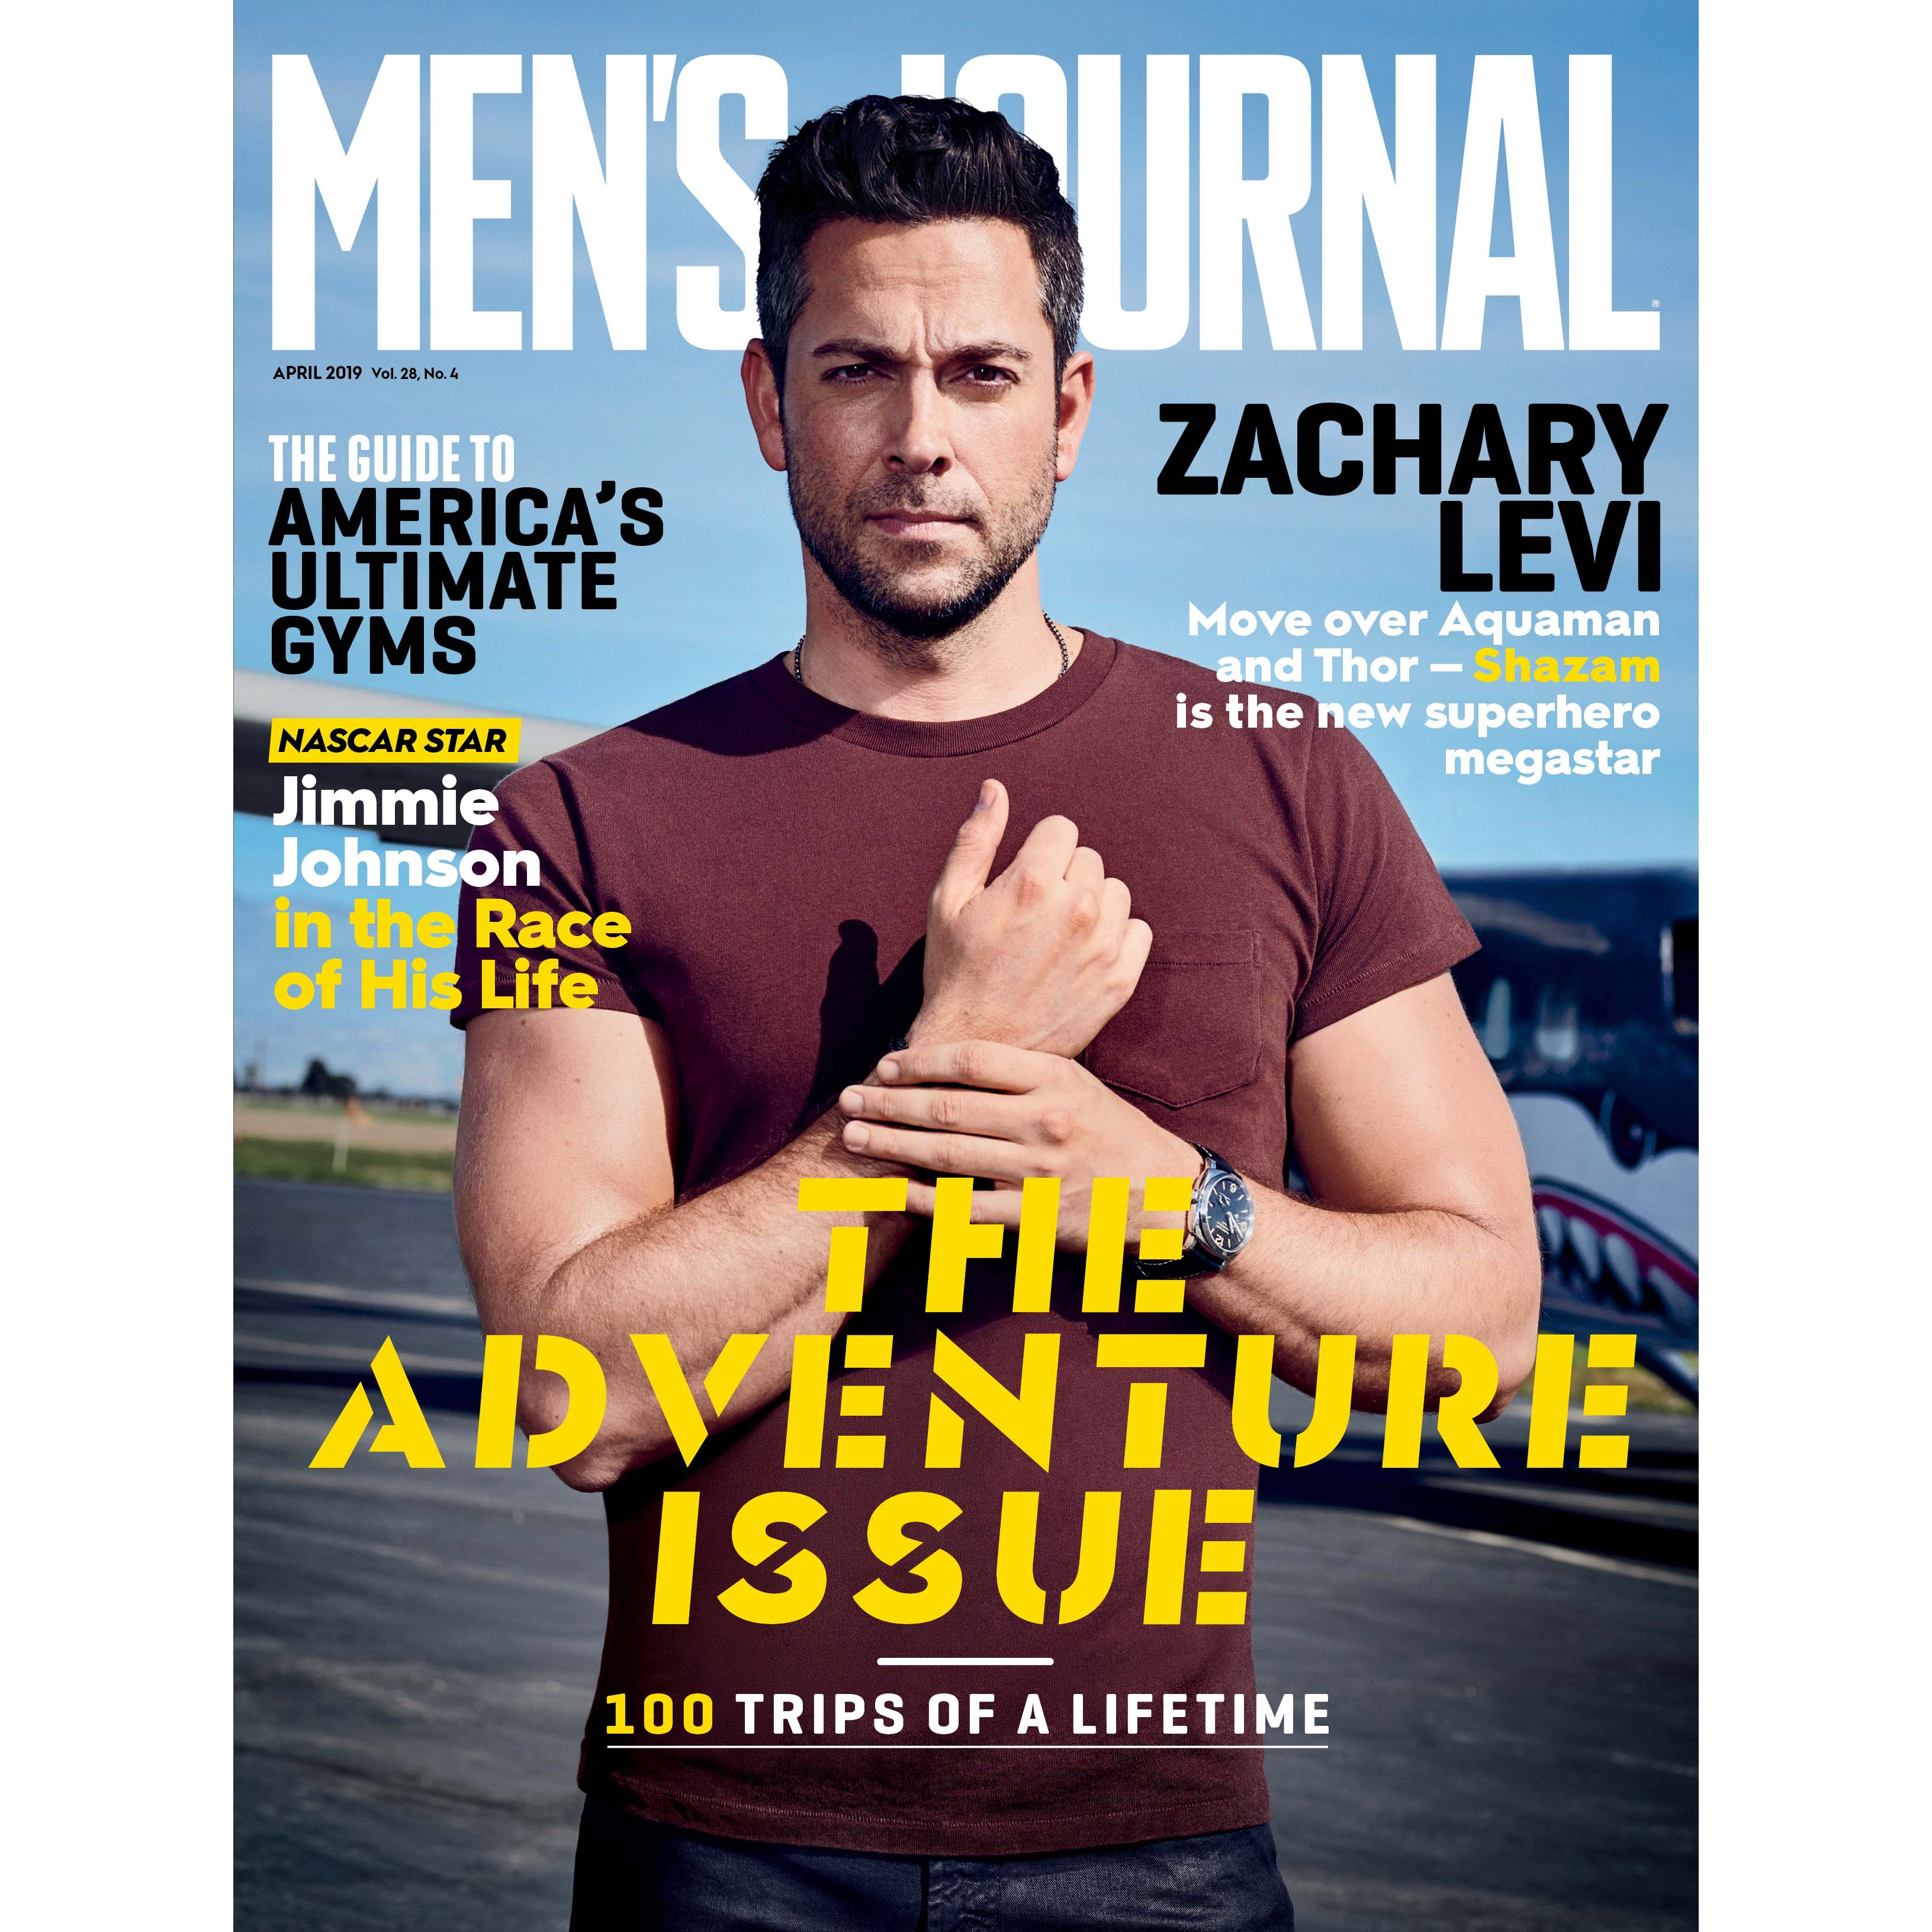 zachary levi men's journal cover